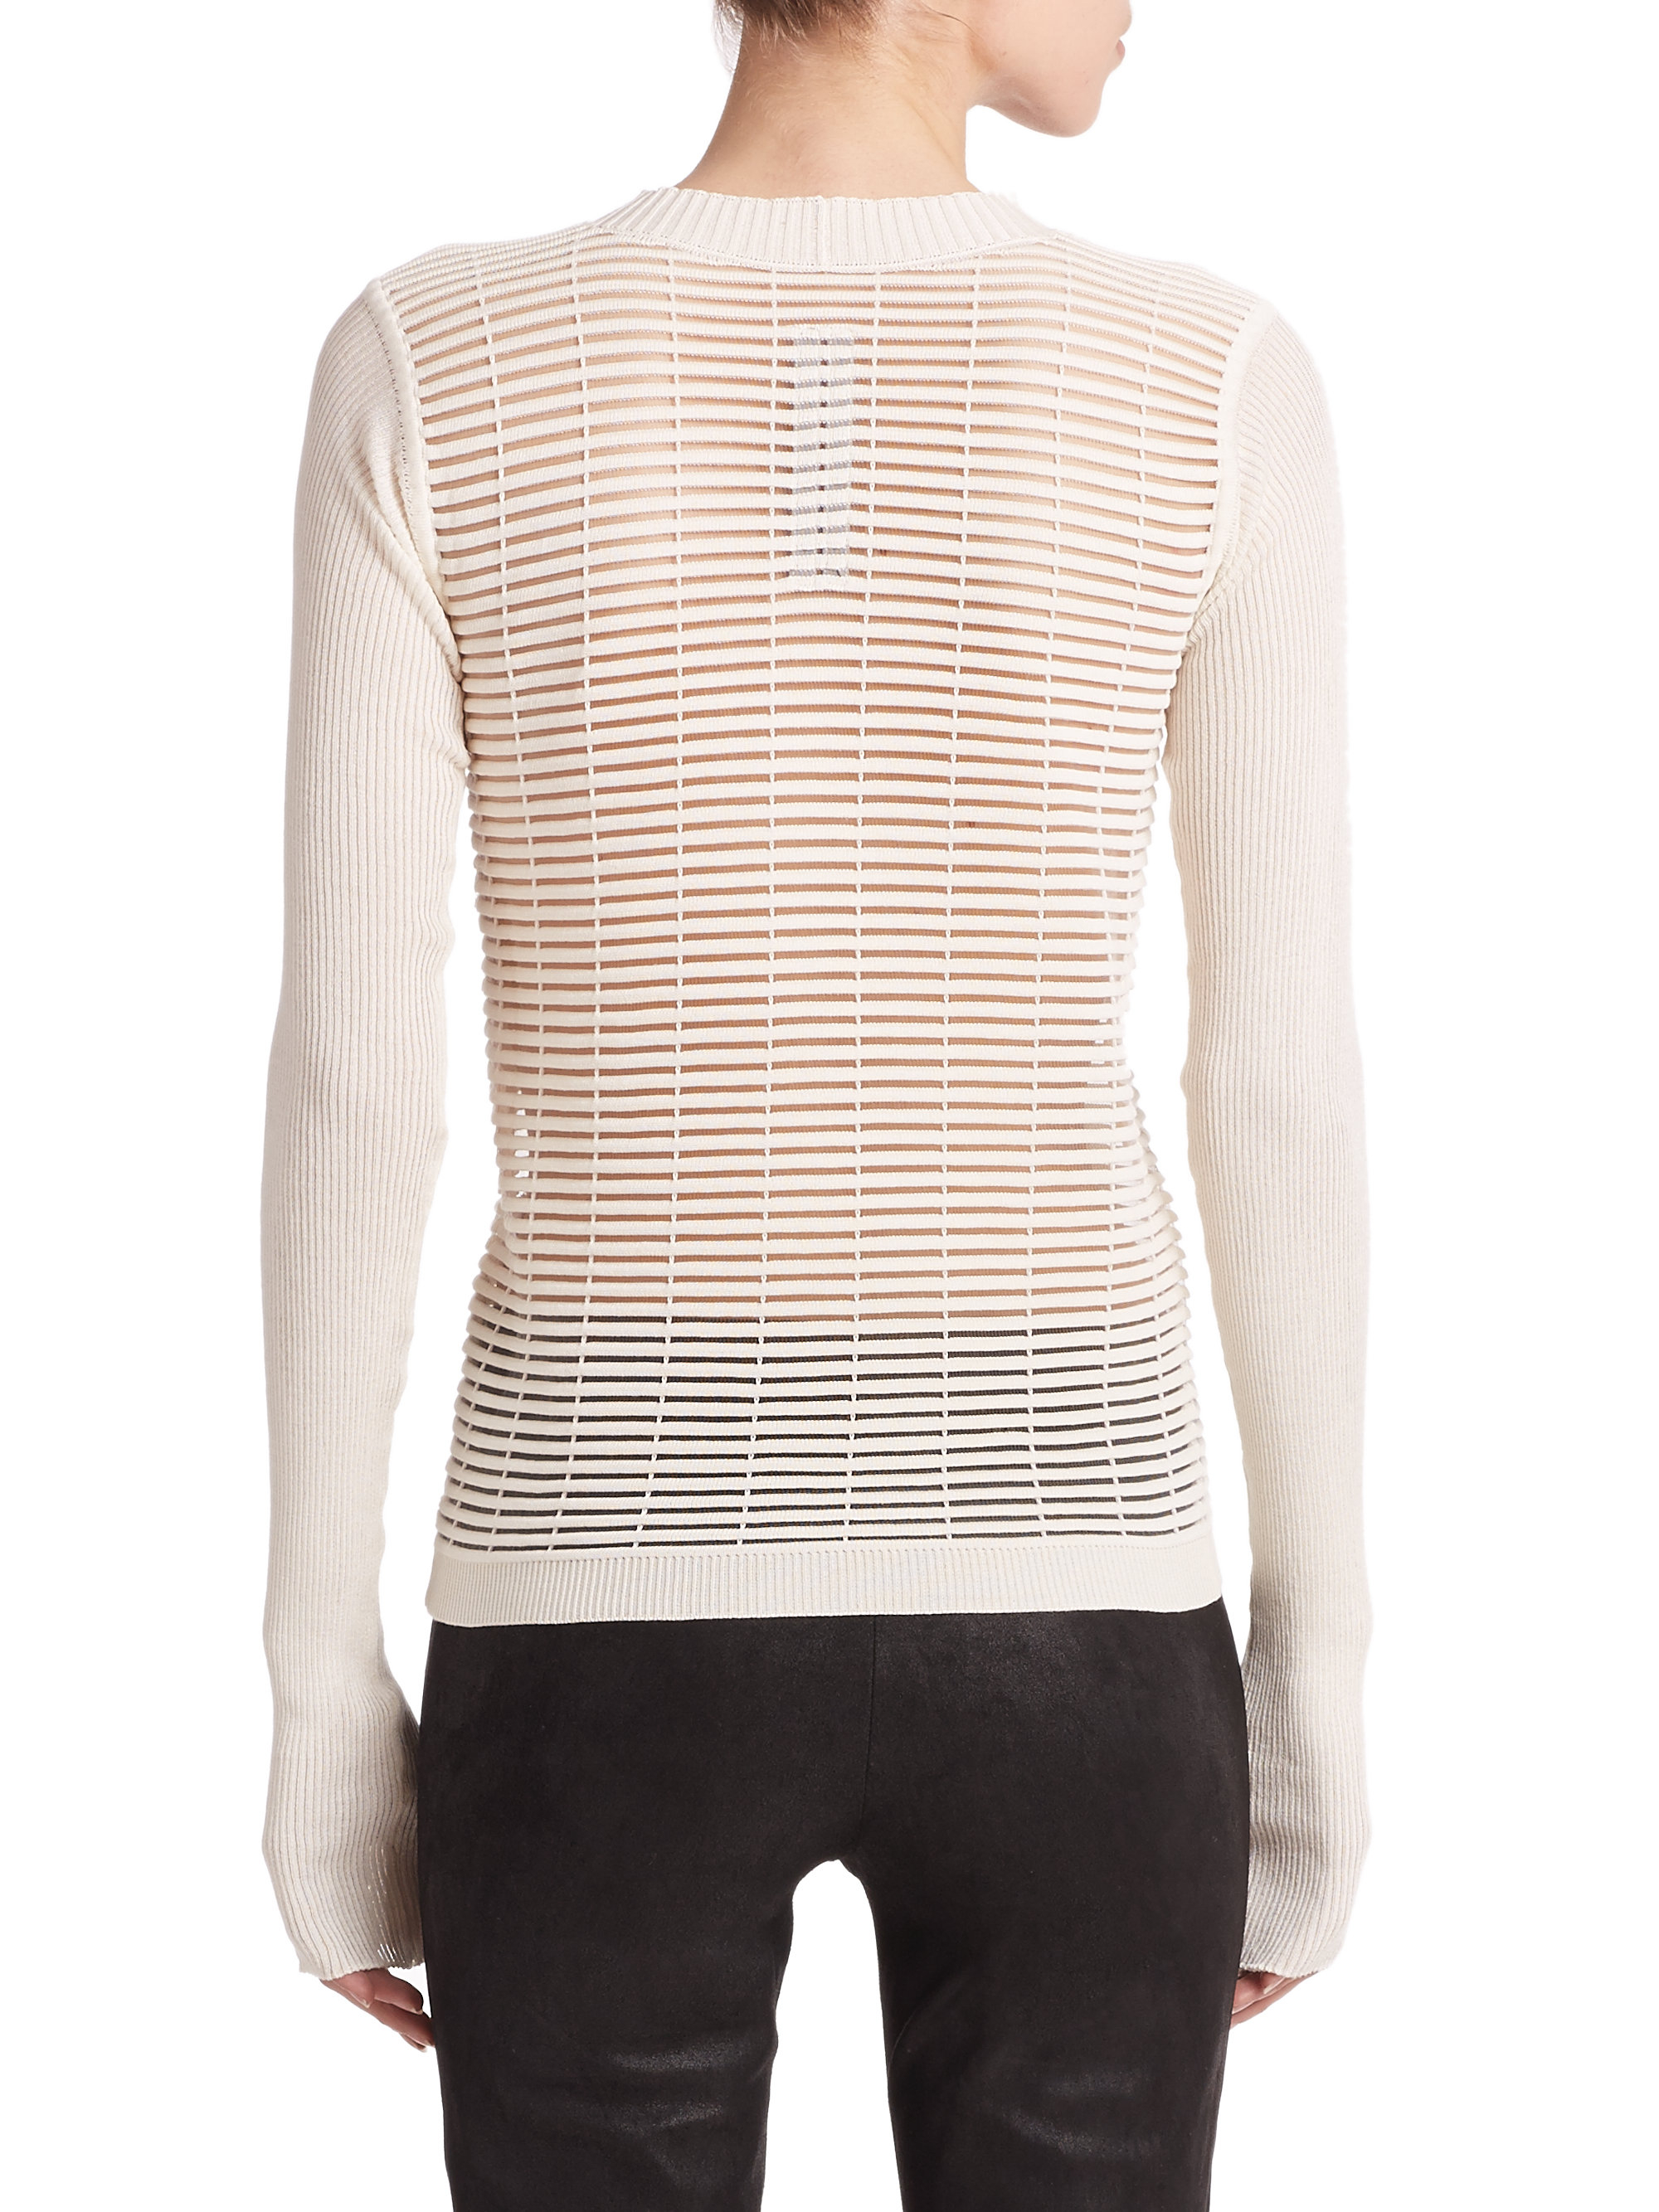 Open Knit Sweater Pattern : Rick owens Open-Knit Stripe Sweater in White Lyst